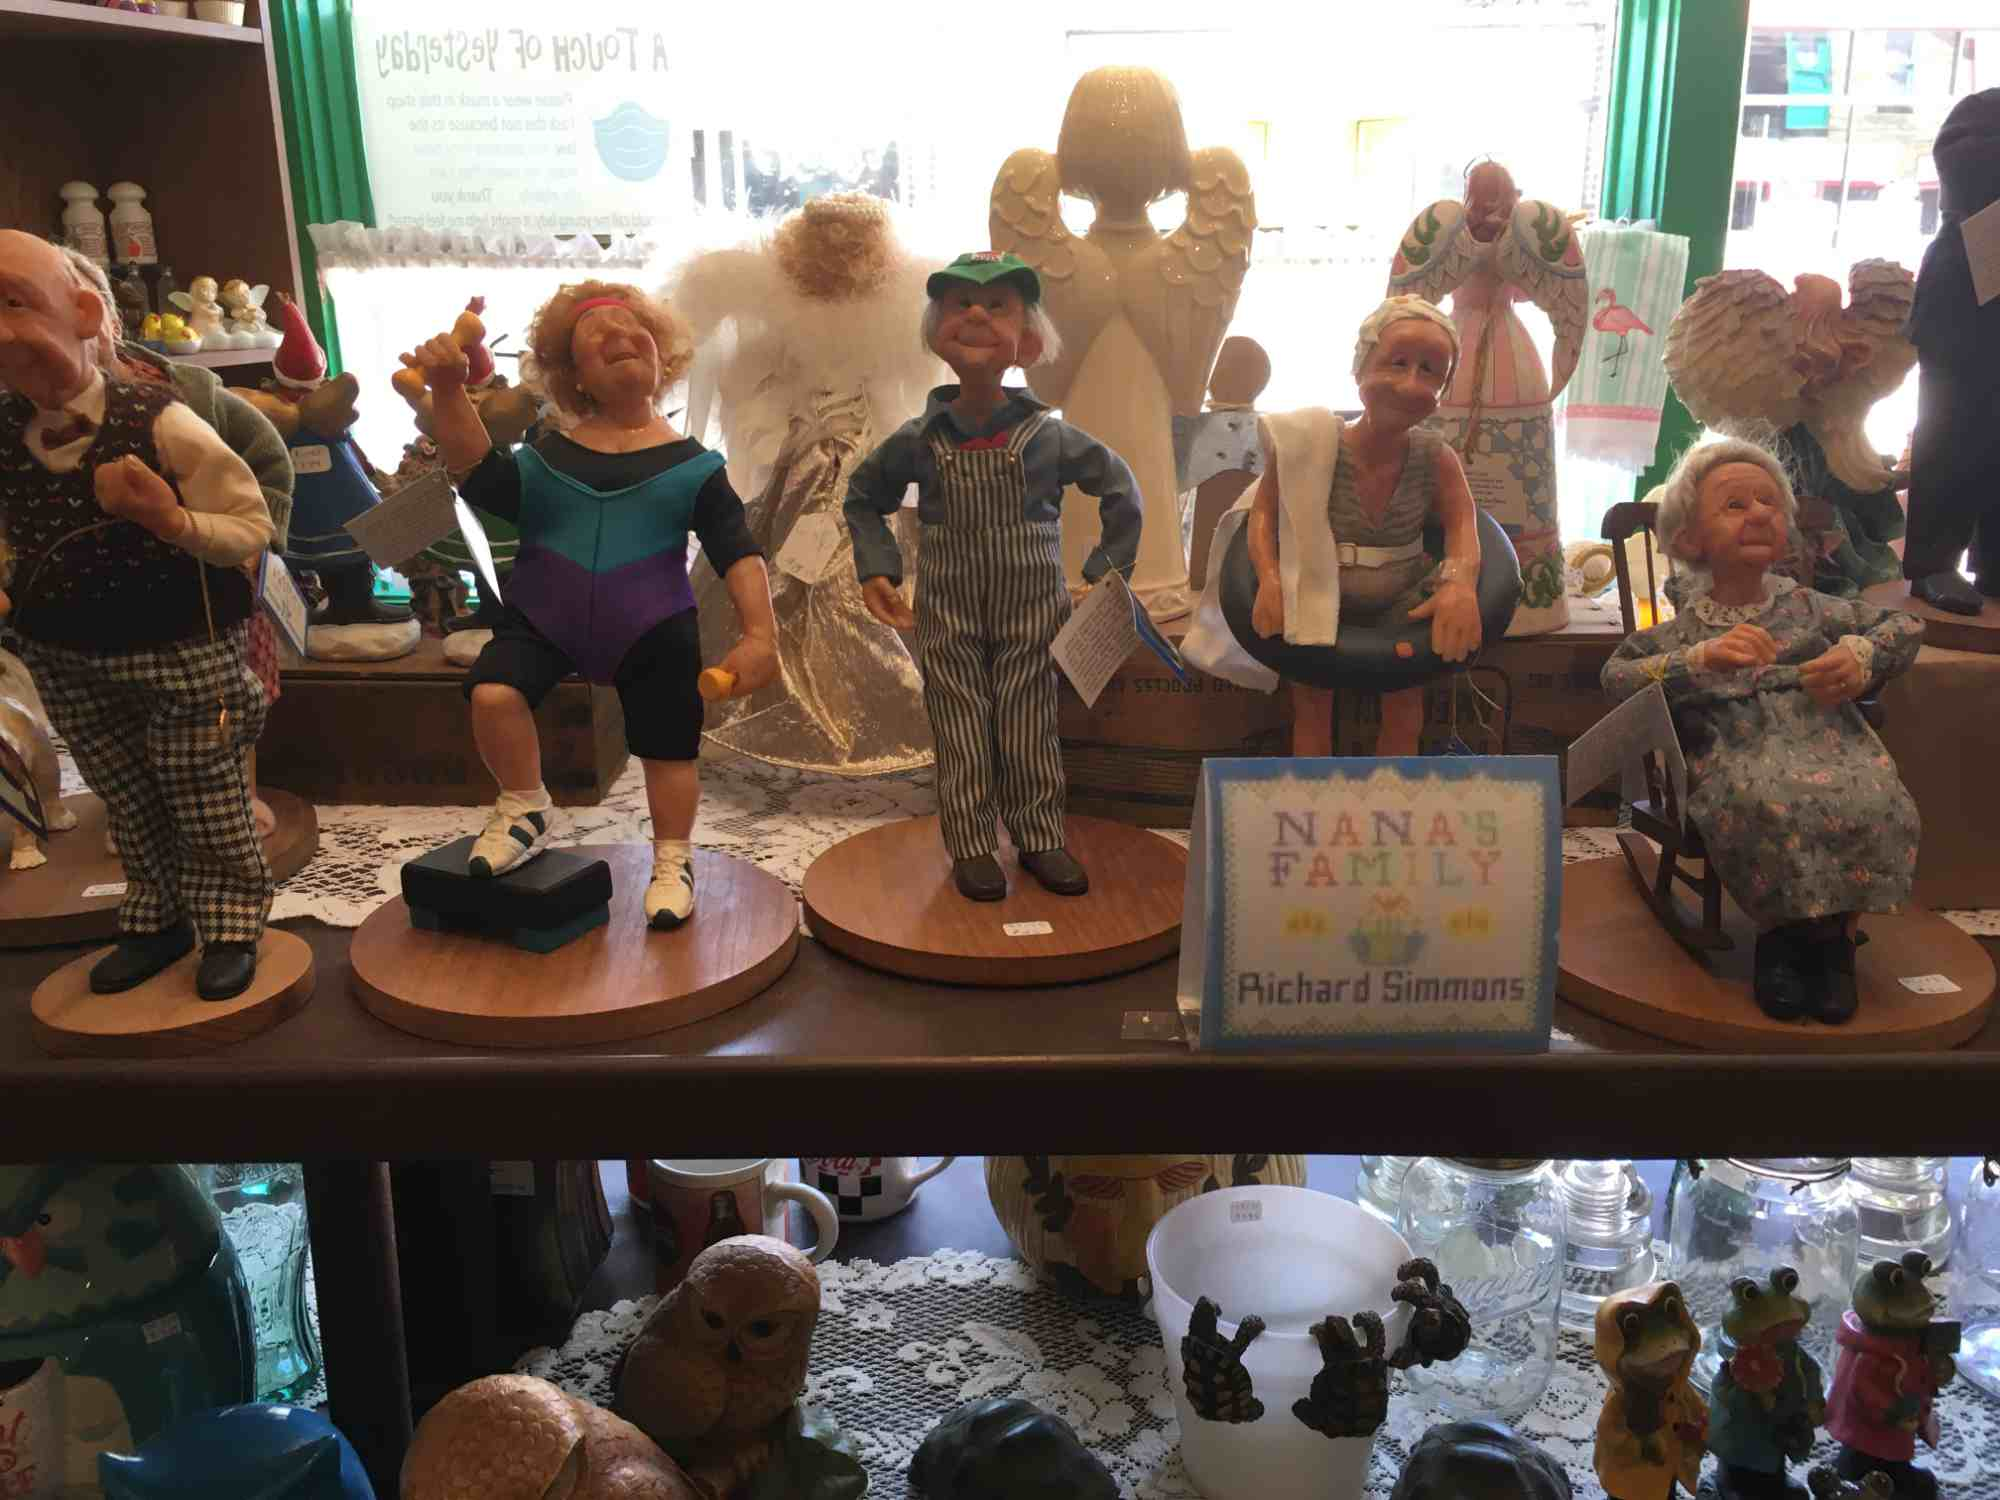 Nanna's family by RIchard Simmons - A Touch of Yesterday - a collector's paradise